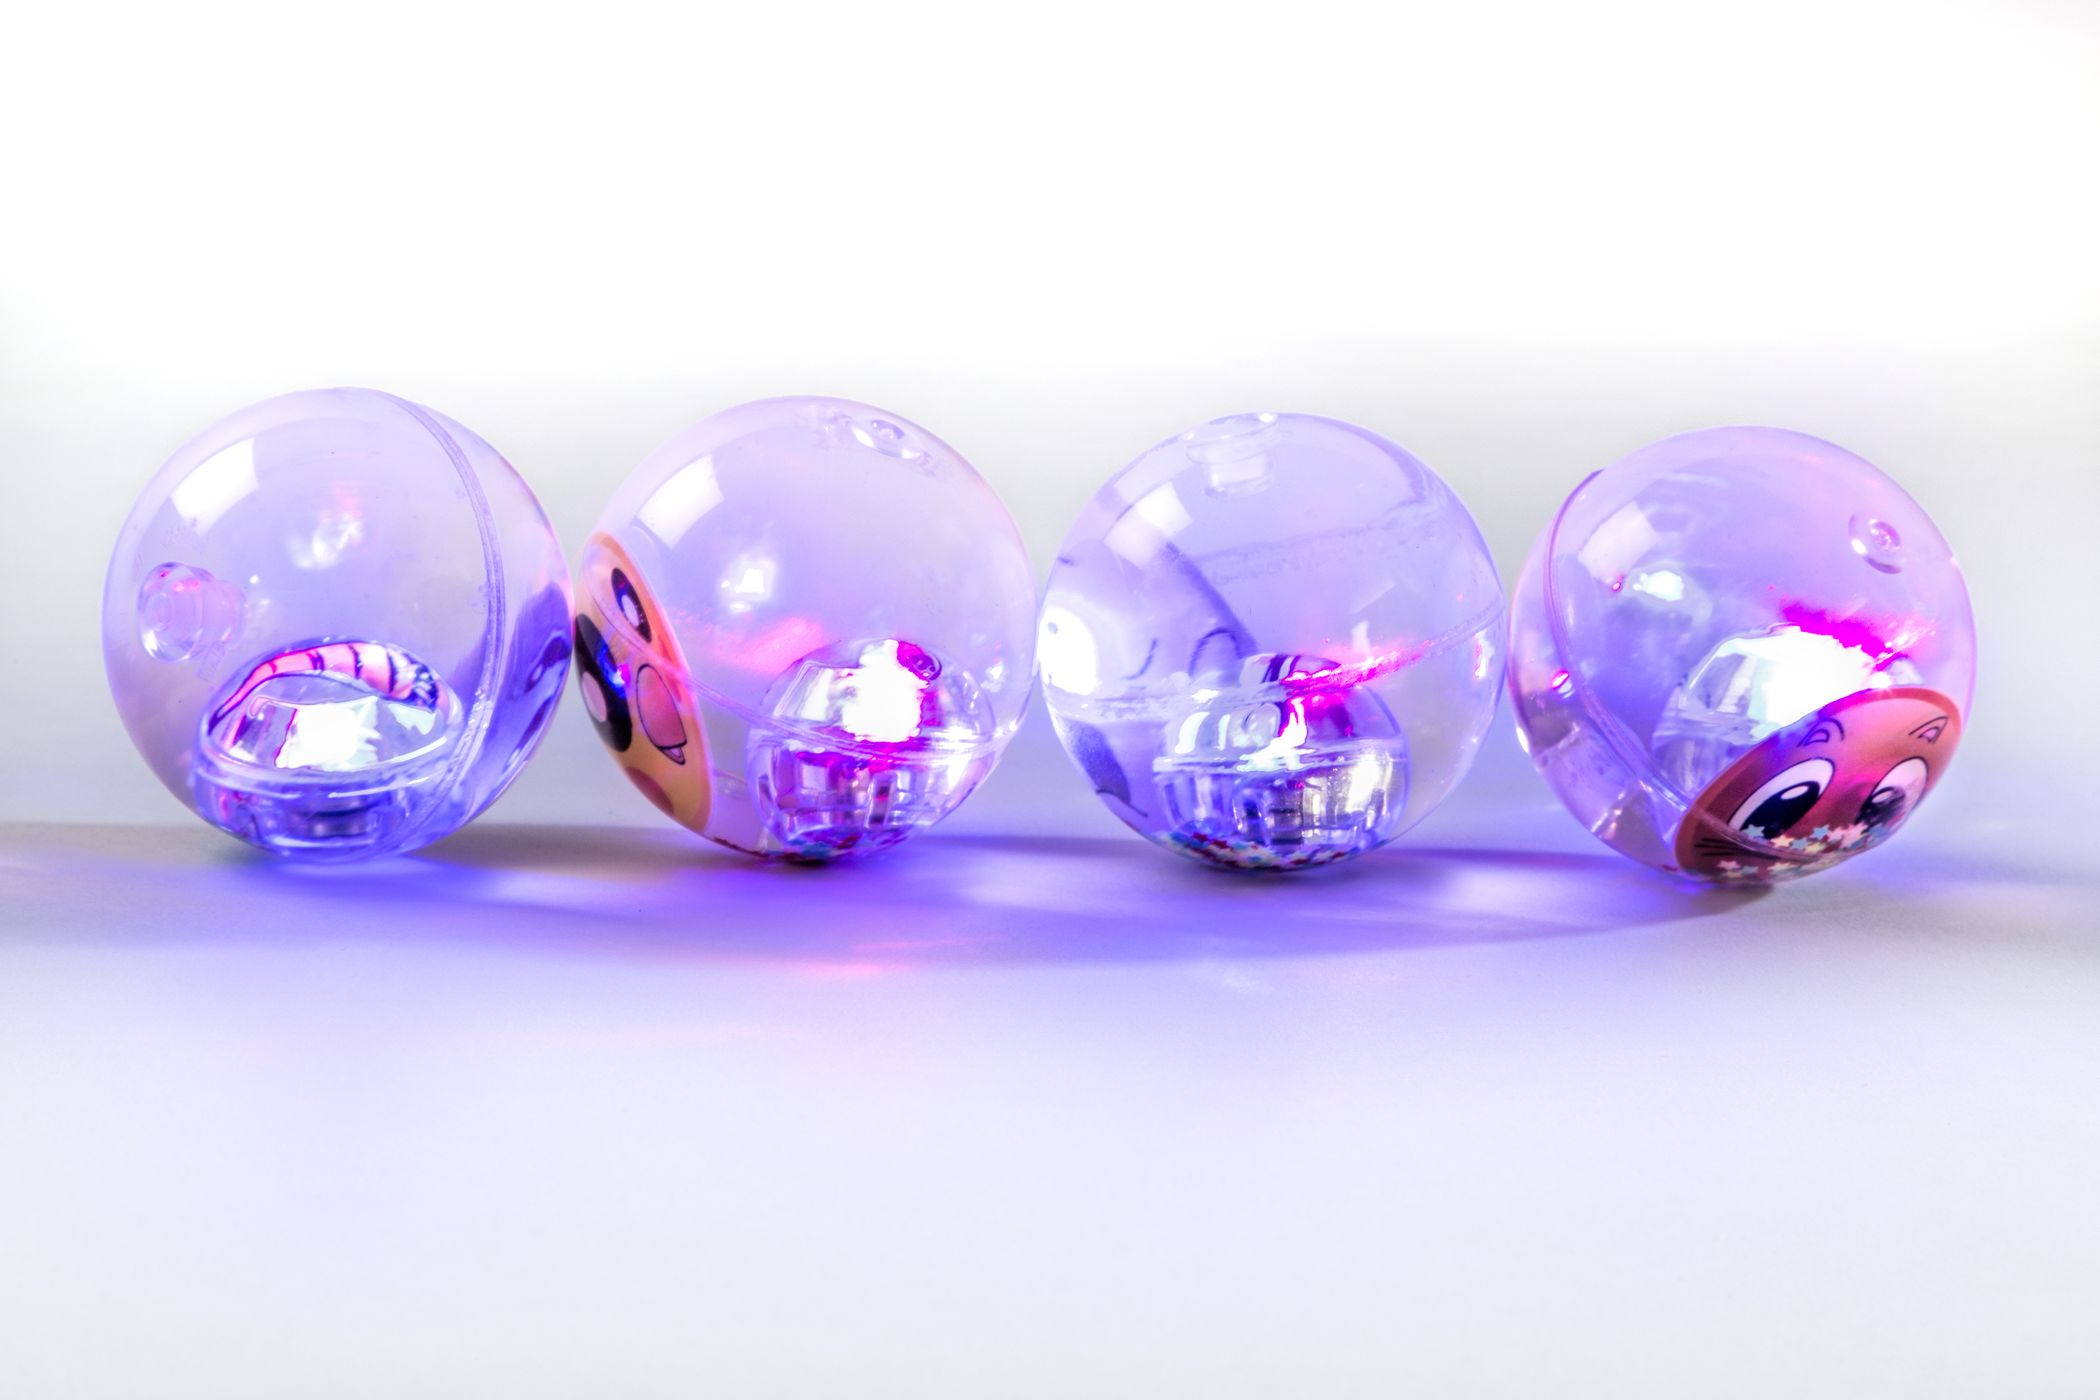 lighting set deco orbs your to garden mood amazon way a of lighted light fun up unique water balls beautiful